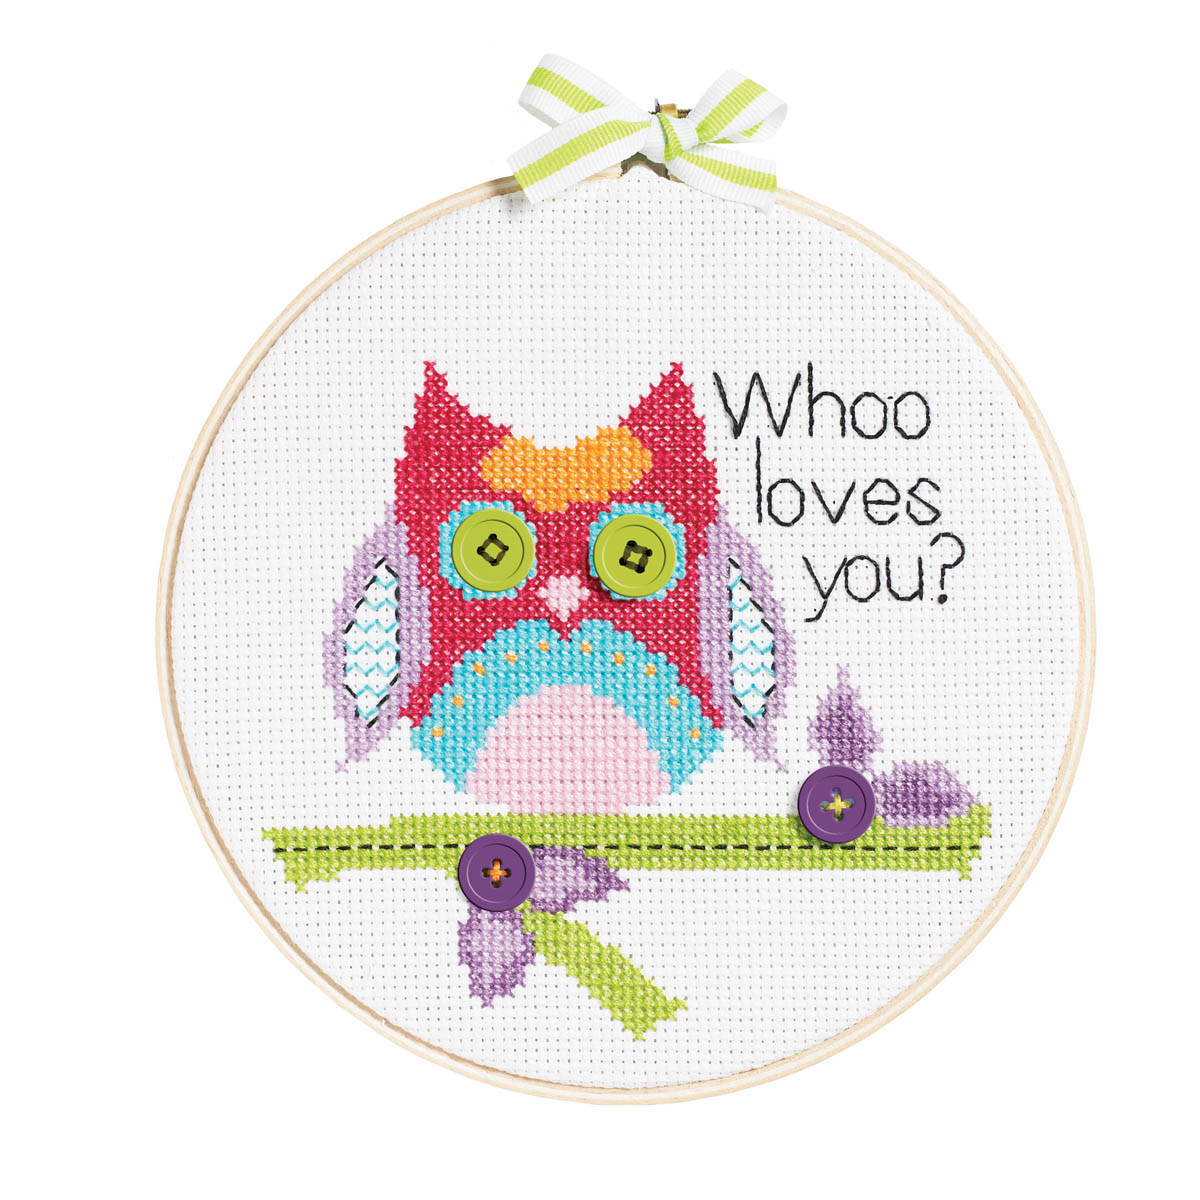 Bucilla ® My 1st Stitch™ - Counted Cross Stitch Kits - Whoo Loves You